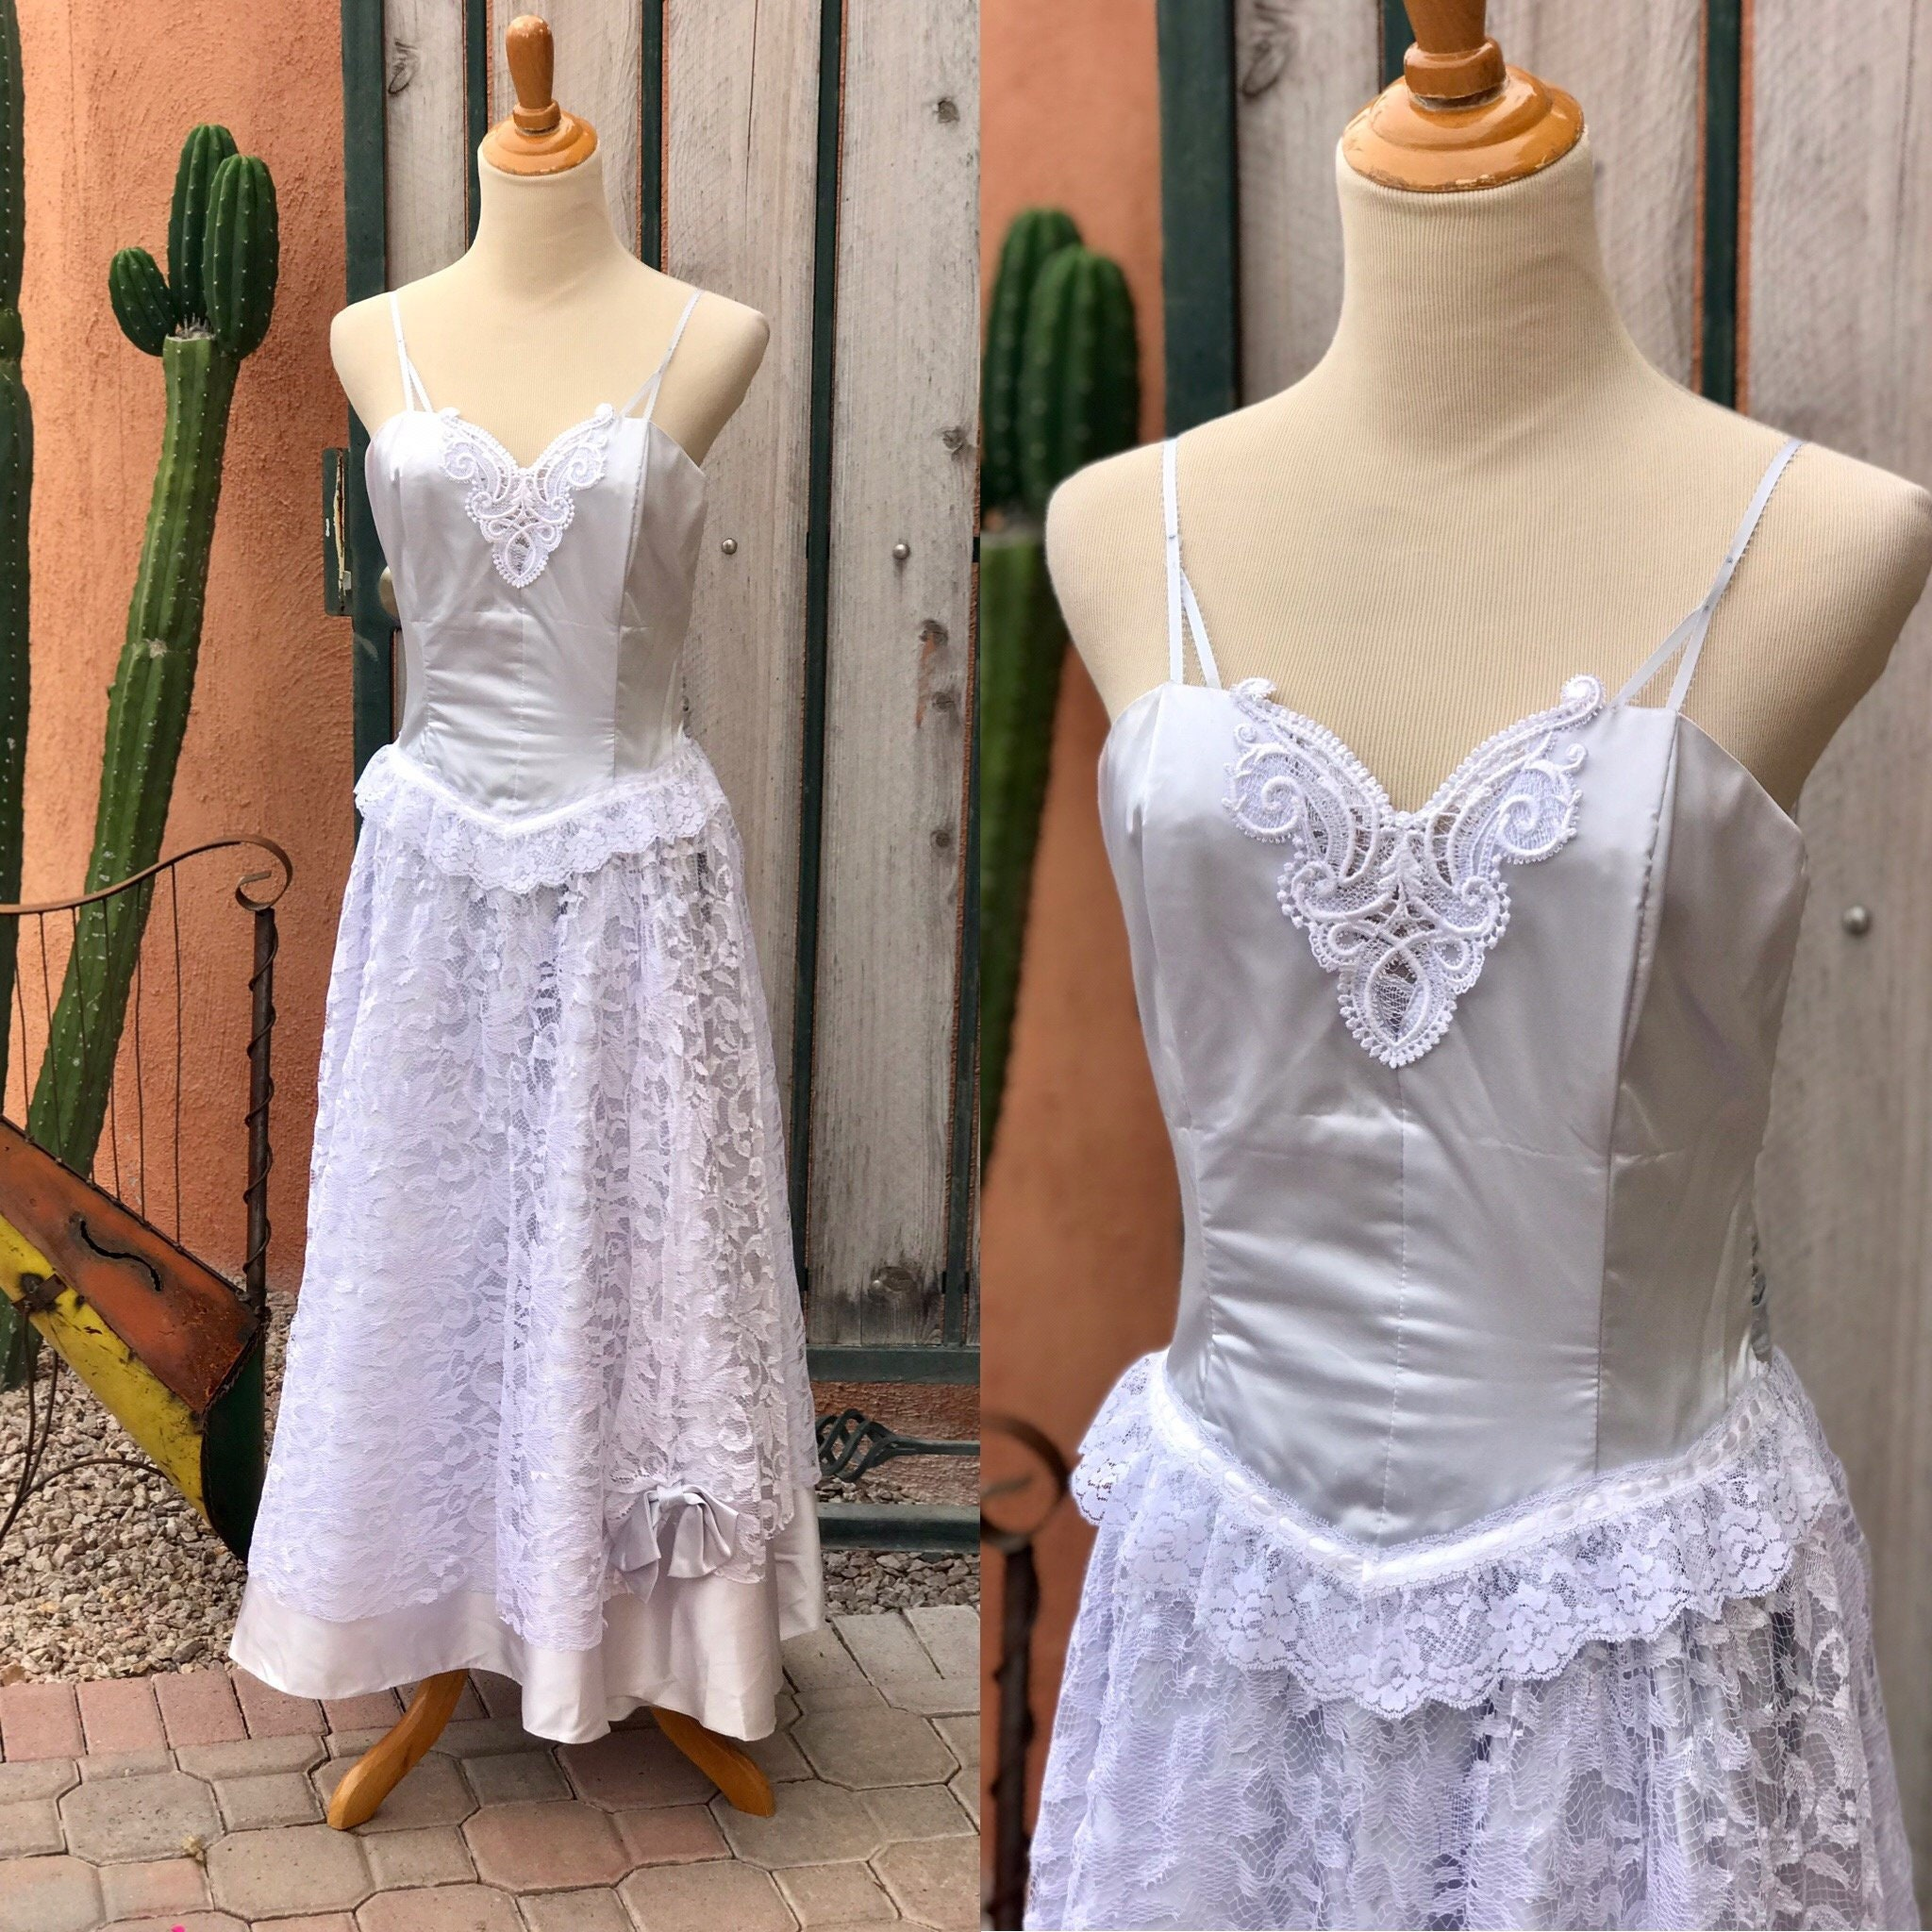 80s Dresses | Casual to Party Dresses 1980S Pale Blue Satiny Strapless Dress White Lace Overlay Tulle Slip By Steppin Out Size 11 $55.00 AT vintagedancer.com